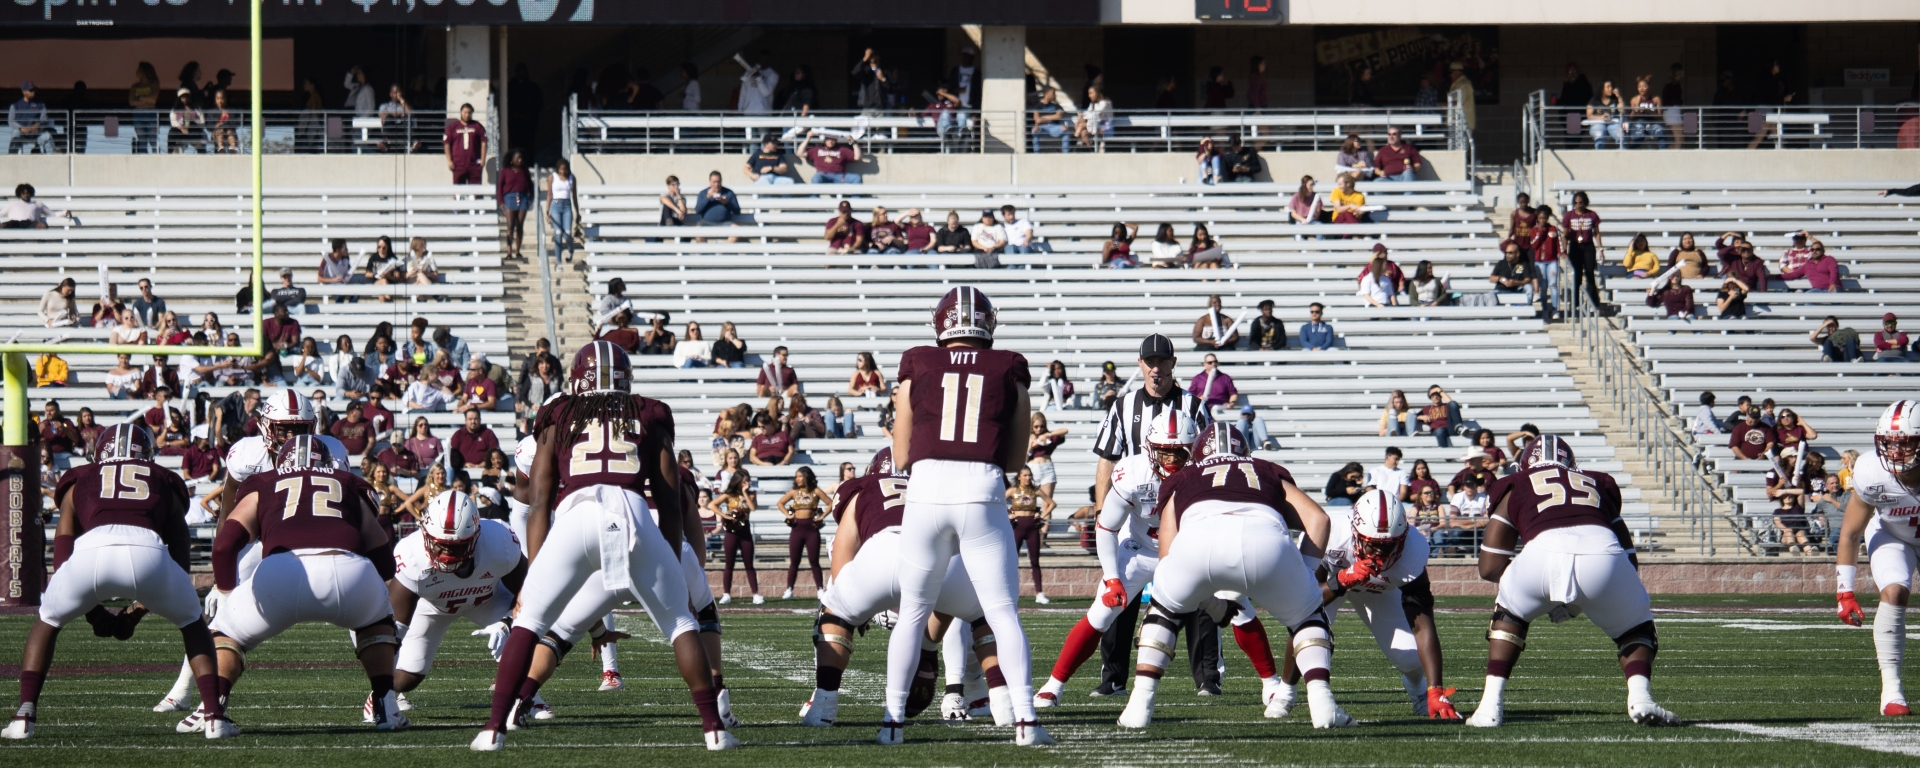 Texas State quarterback Tyler Vitt awaits the snap. His offensive line is in front of him and running back is to his left.